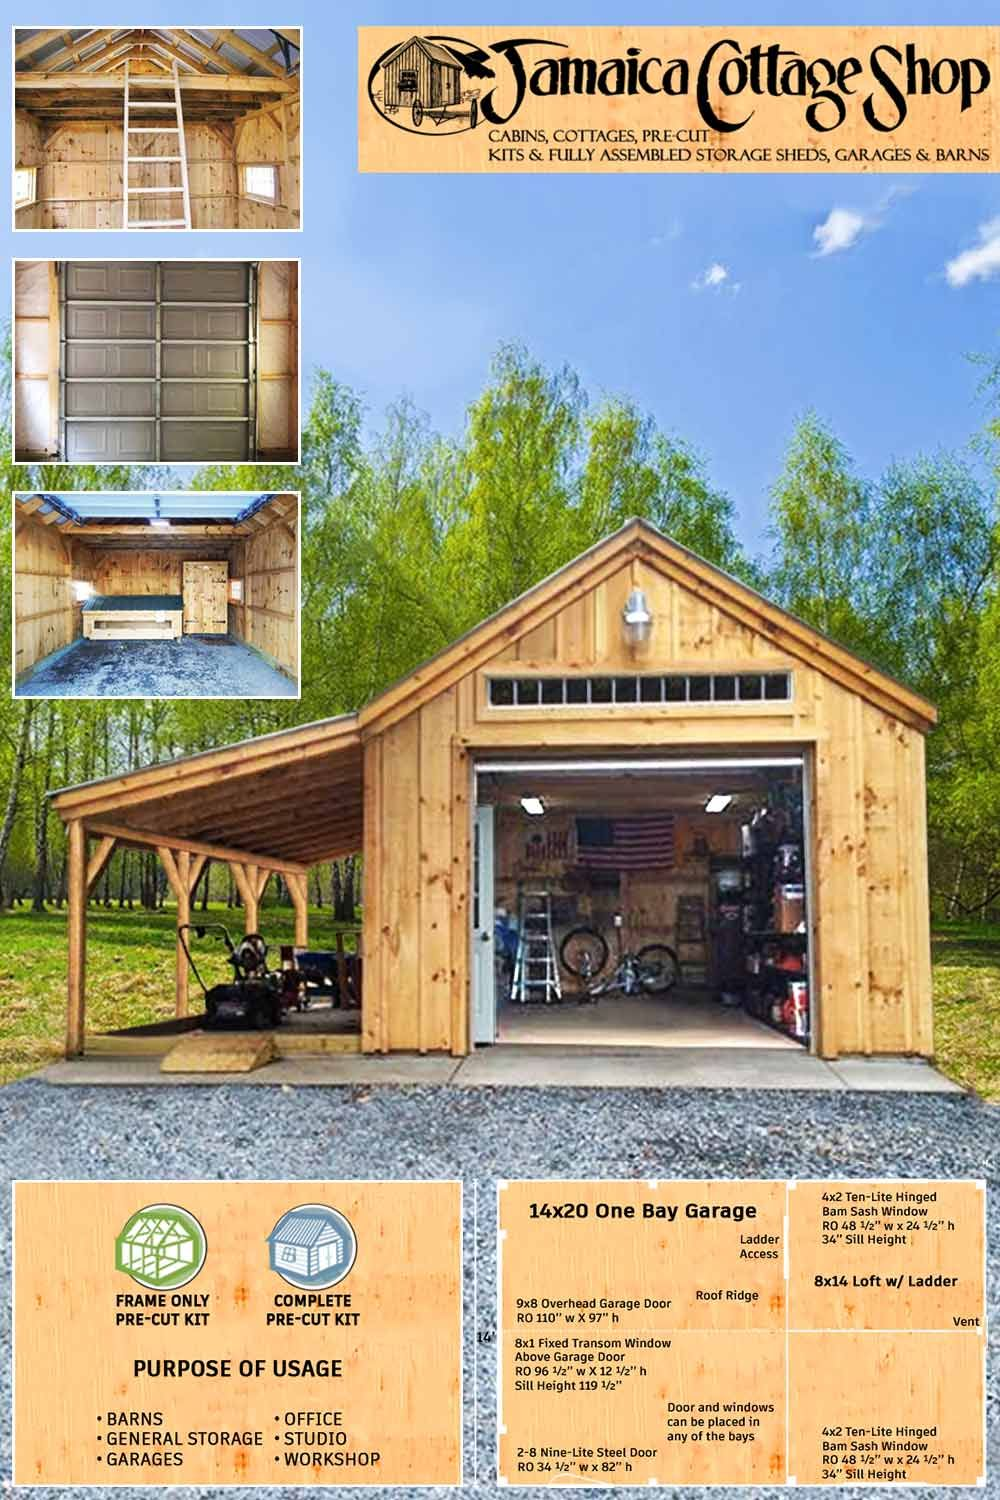 Multipurpose Space At 14 X 24 One Bay Garage In 2020 Garage Construction Backyard Sheds Backyard Decor